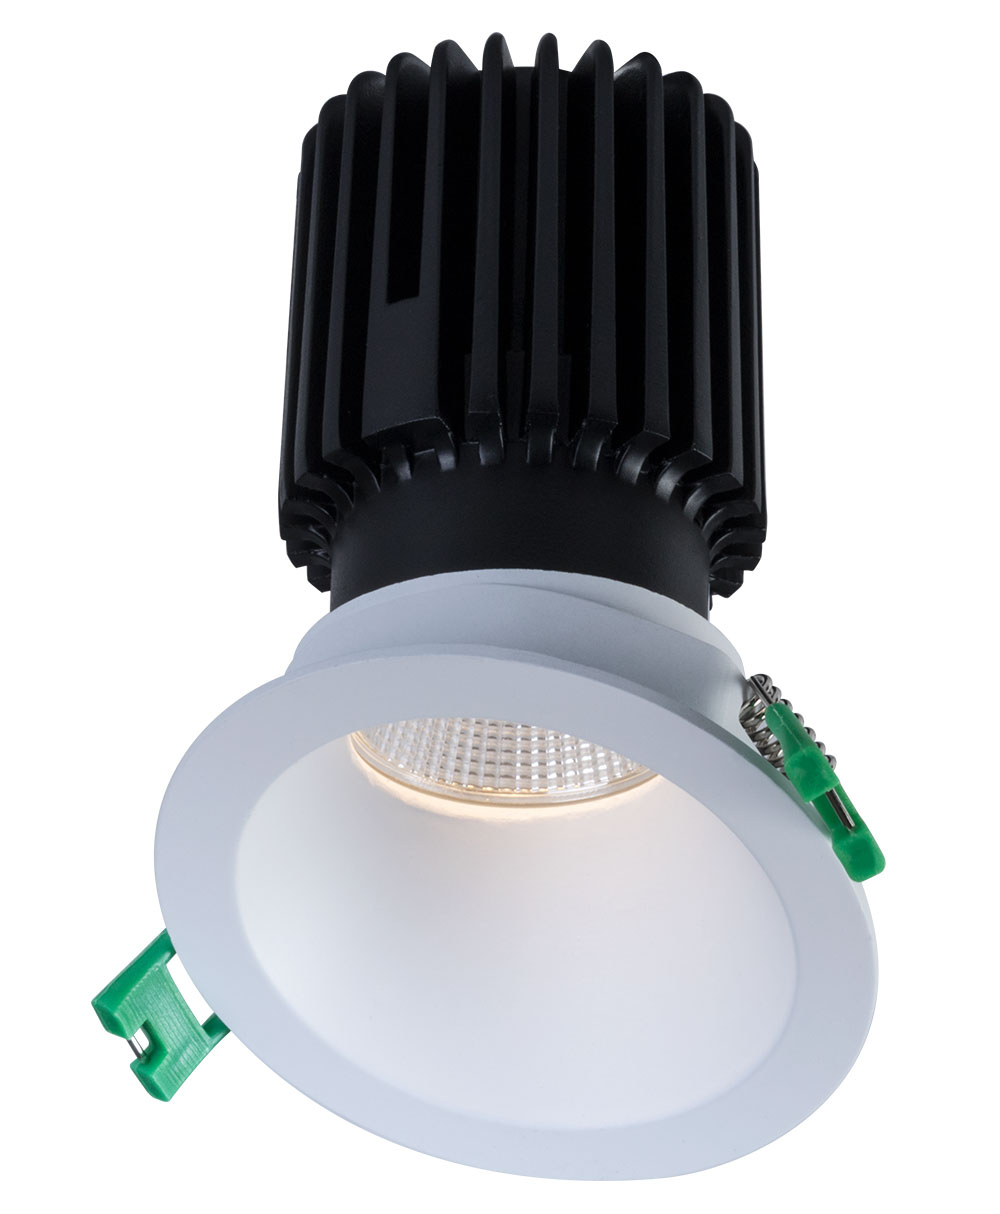 Sigma 2 Round Slope Ceiling Wall Wash LED